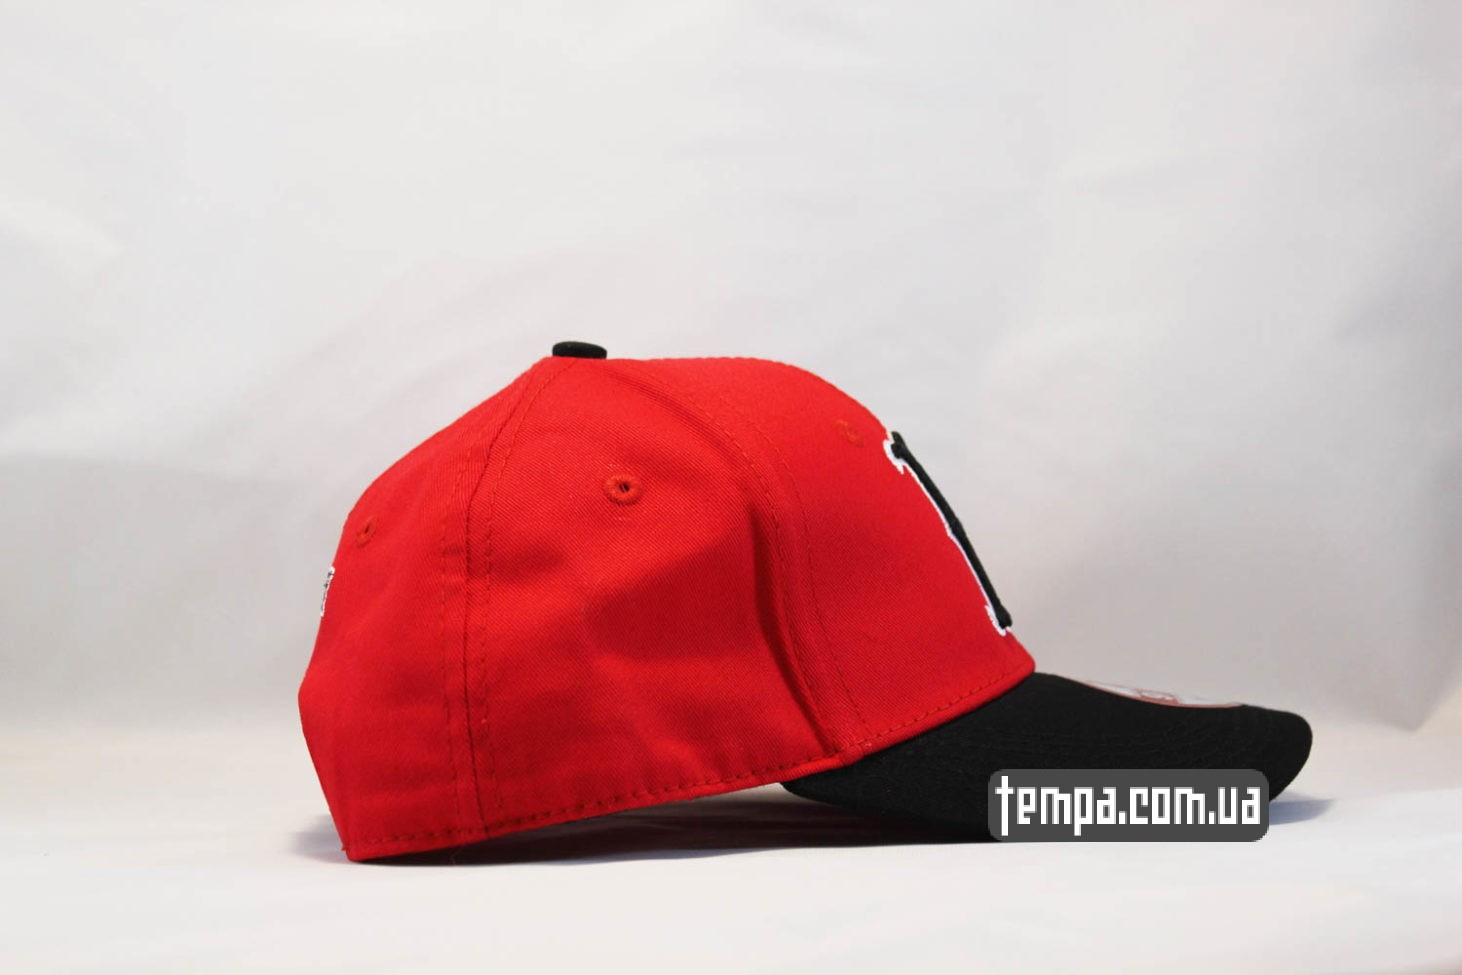 гнущийся козырек кепка бейсболка BOSTON REDSOX красная new era